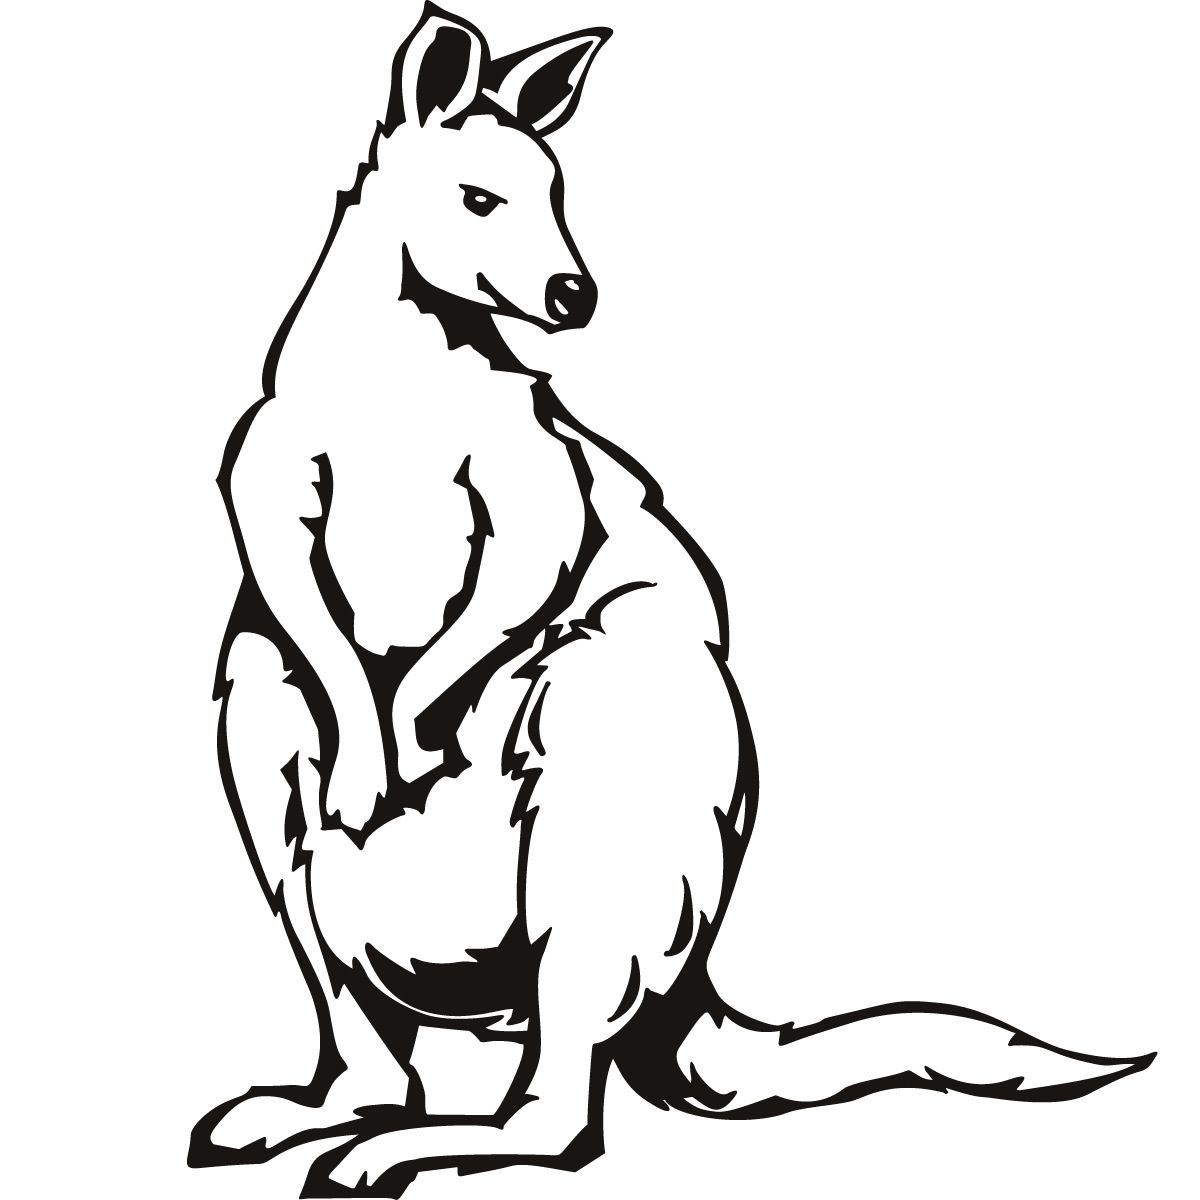 kangaroo animal coloring pages. Coloring Pages For Kids  Line Drawings Kangaroos Sunday School Diy Crafts Schools Preschool Printable Children Pin by Eleni Velivasakis on Pinterest Scrap